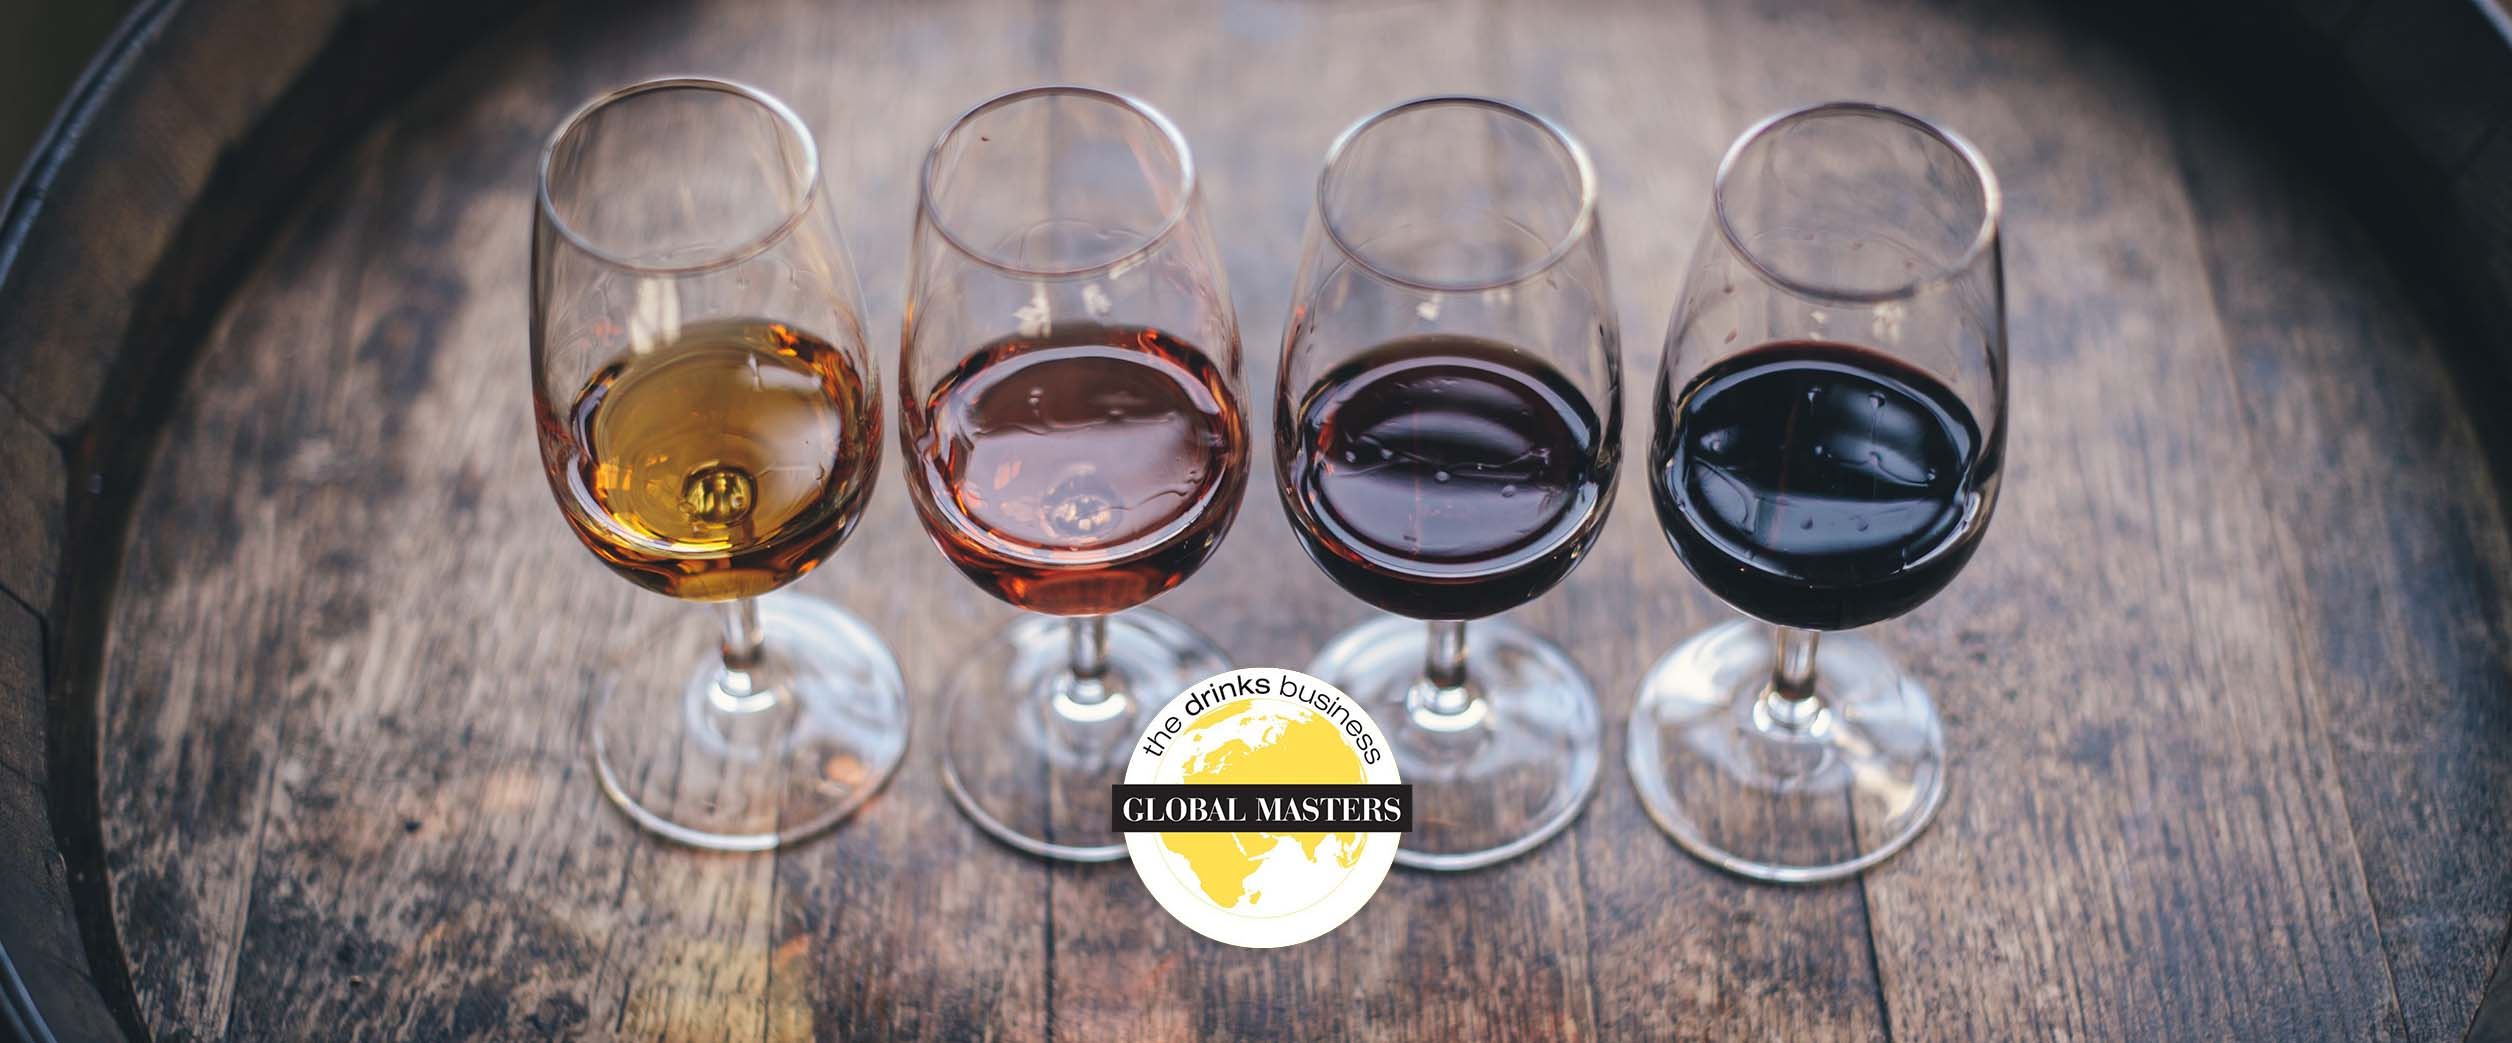 The Global Wine Masters Competitions